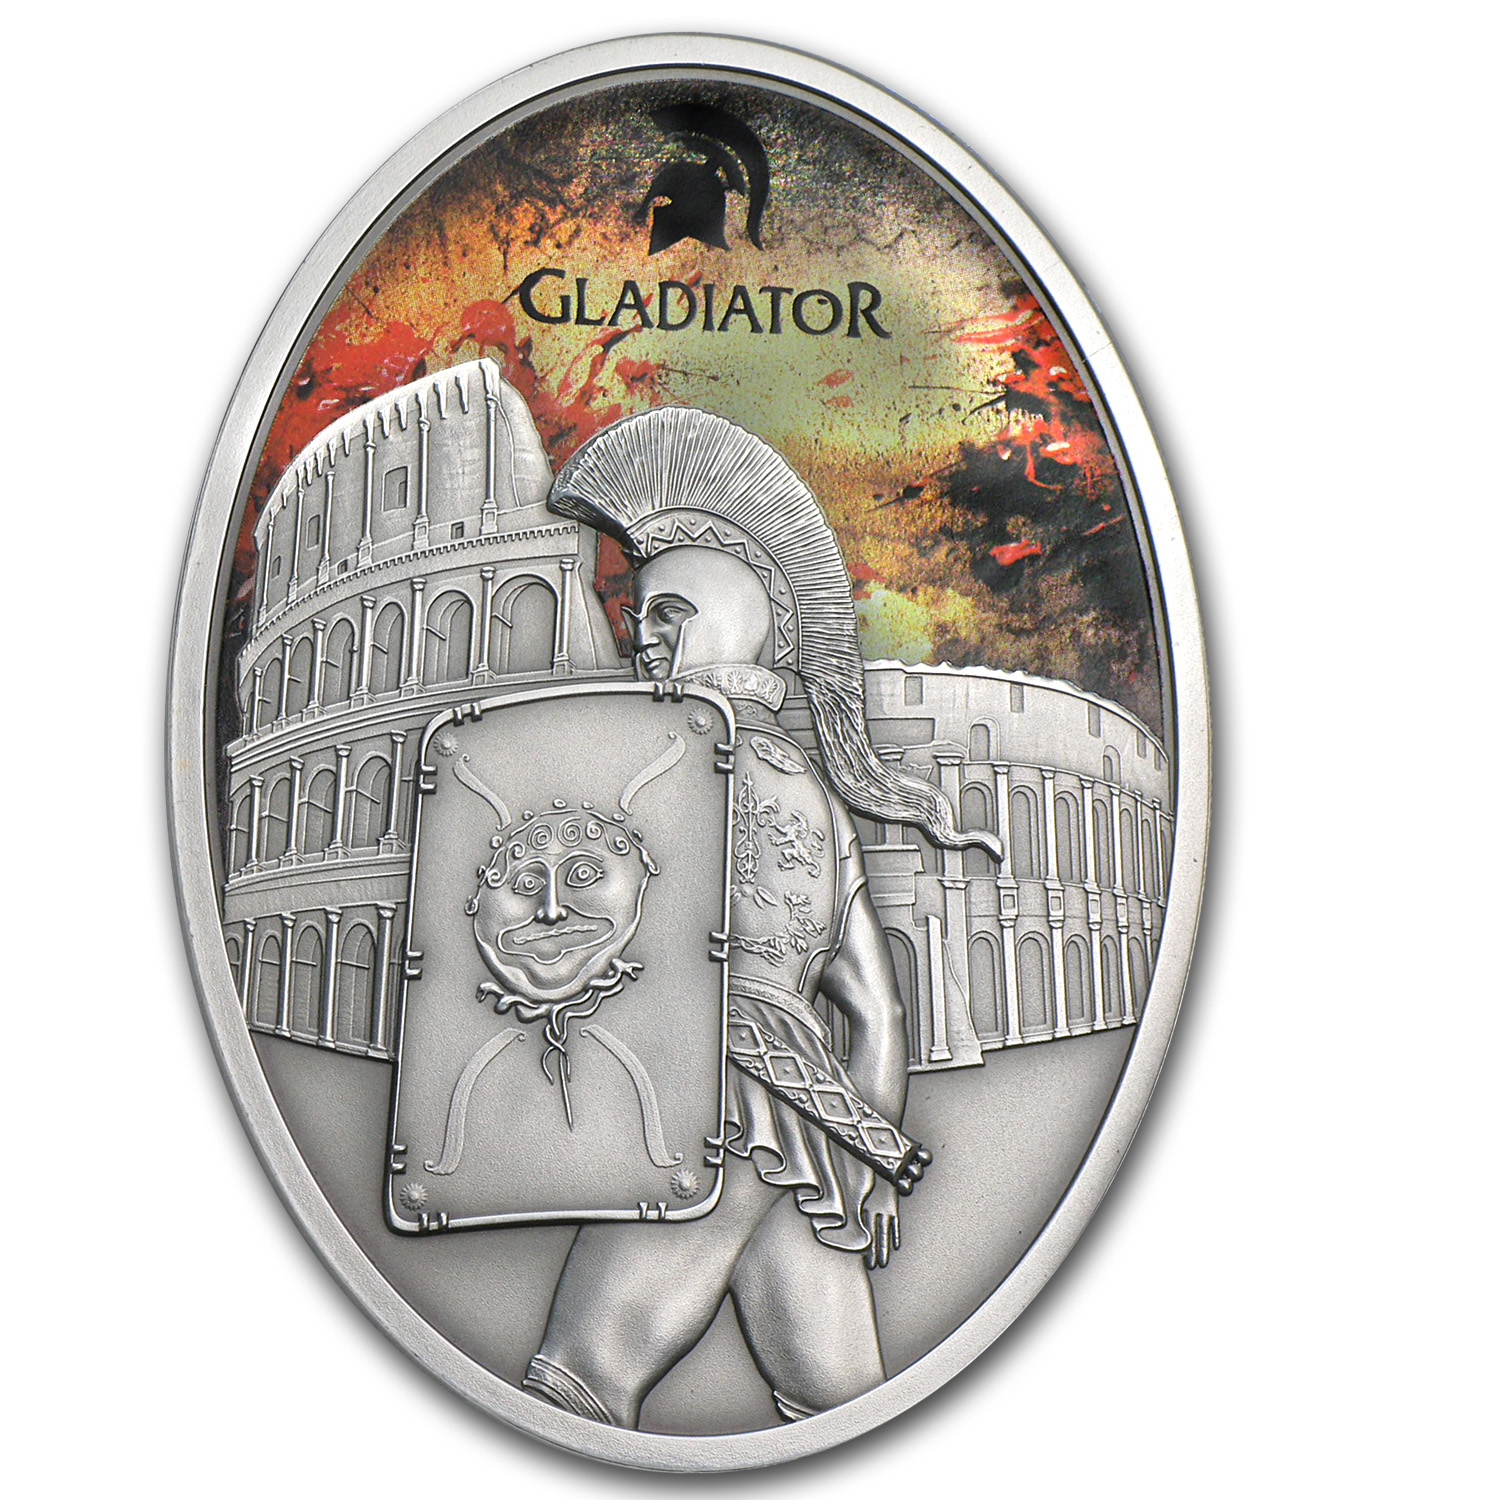 2013 Fiji 1 oz Silver $10 Gladiator Roman Empire Provocator